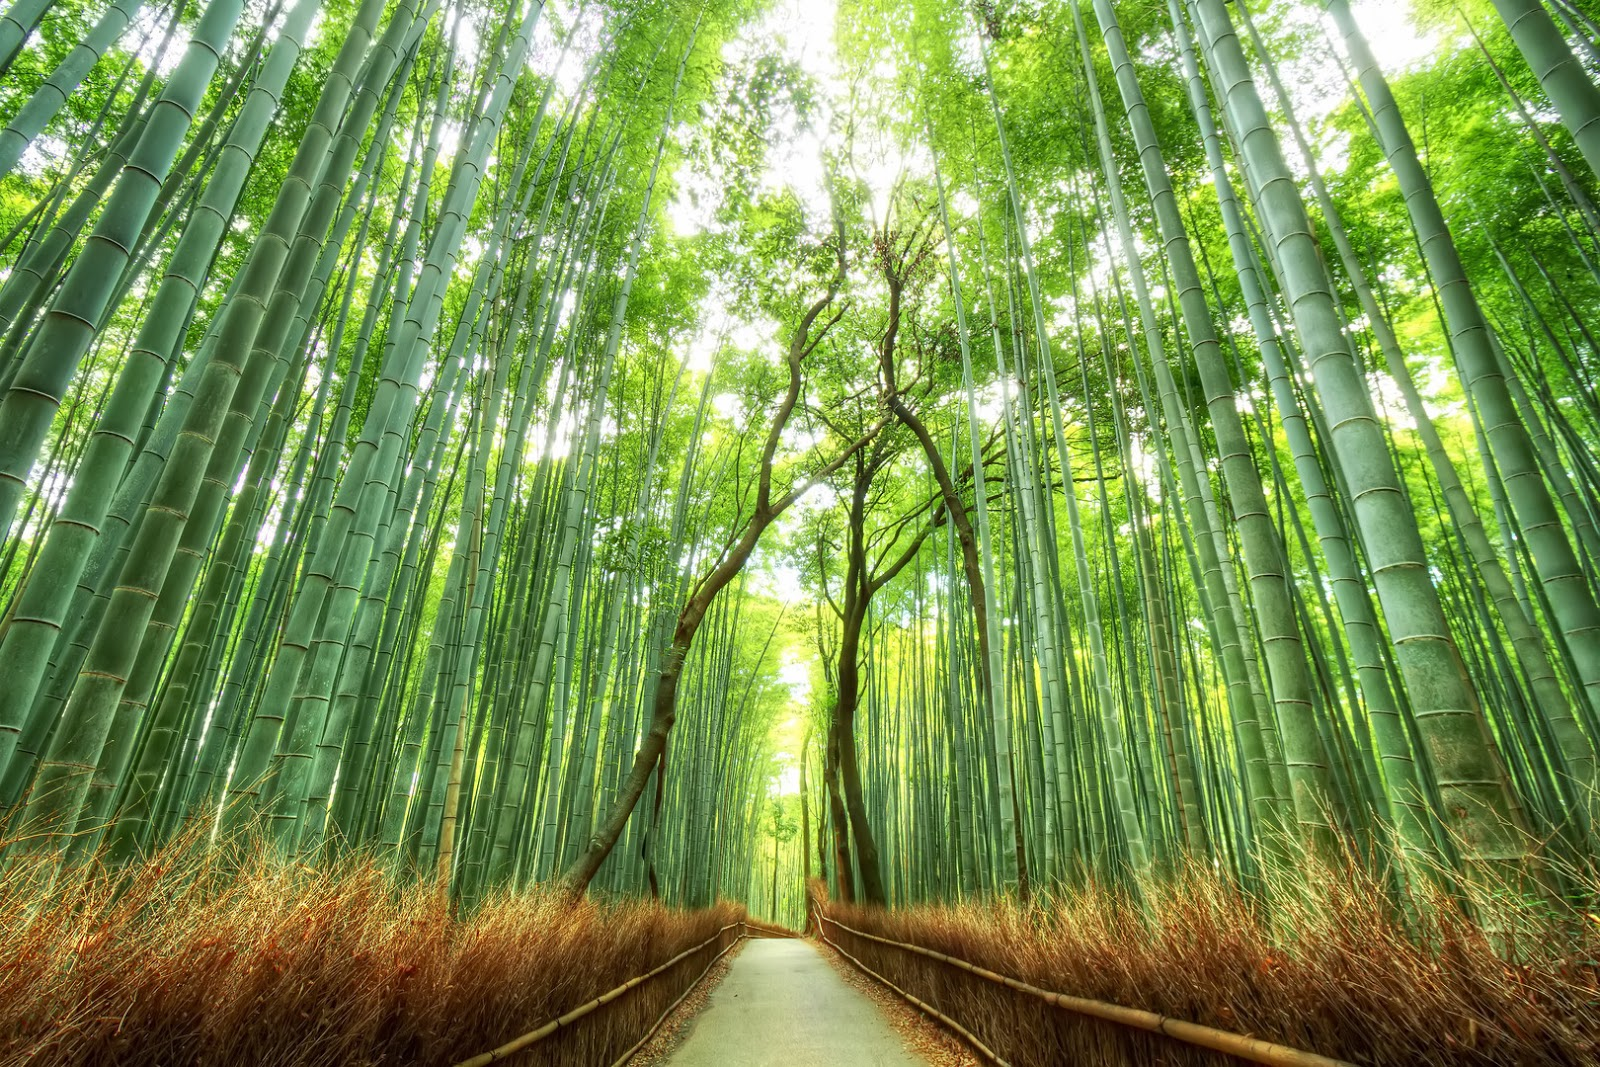 Bamboo Forest, USA